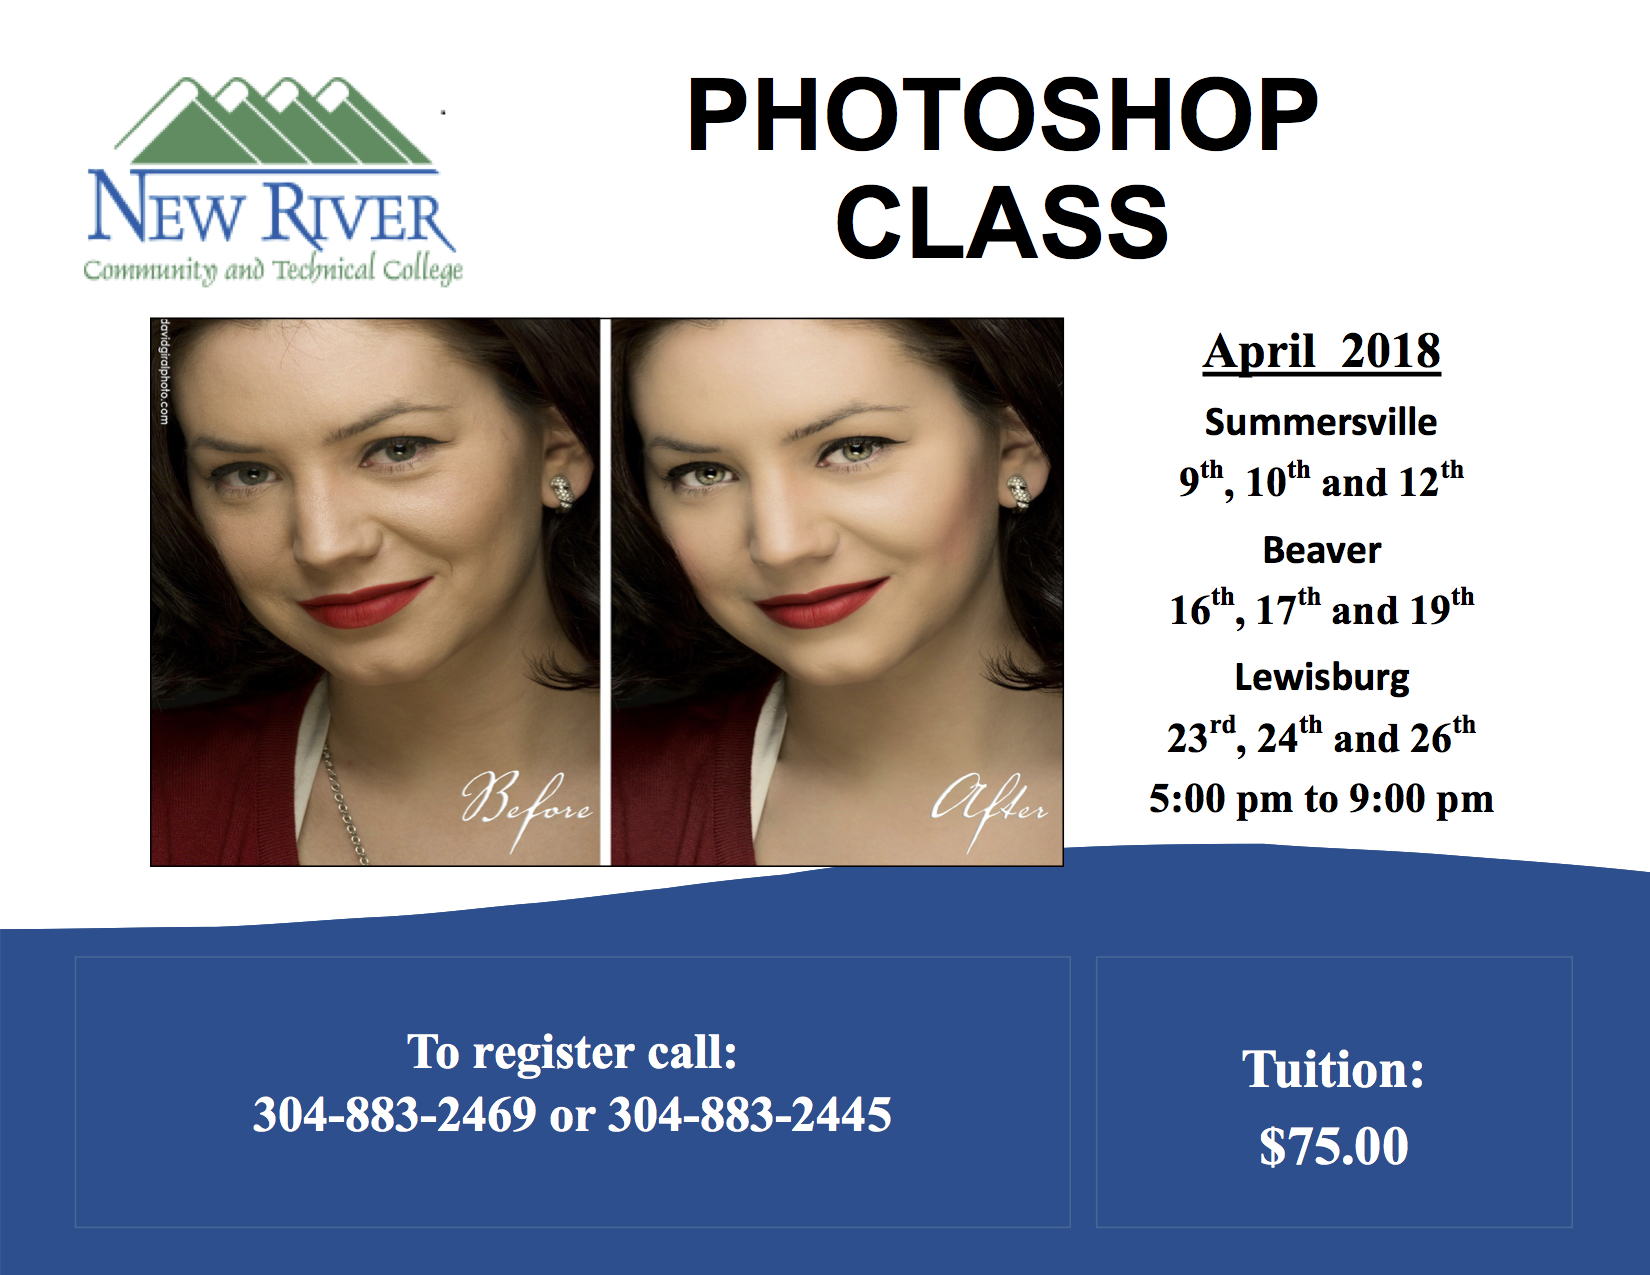 Photoshop Classes Photoshop Classes Offered At New River Ctc New River Community